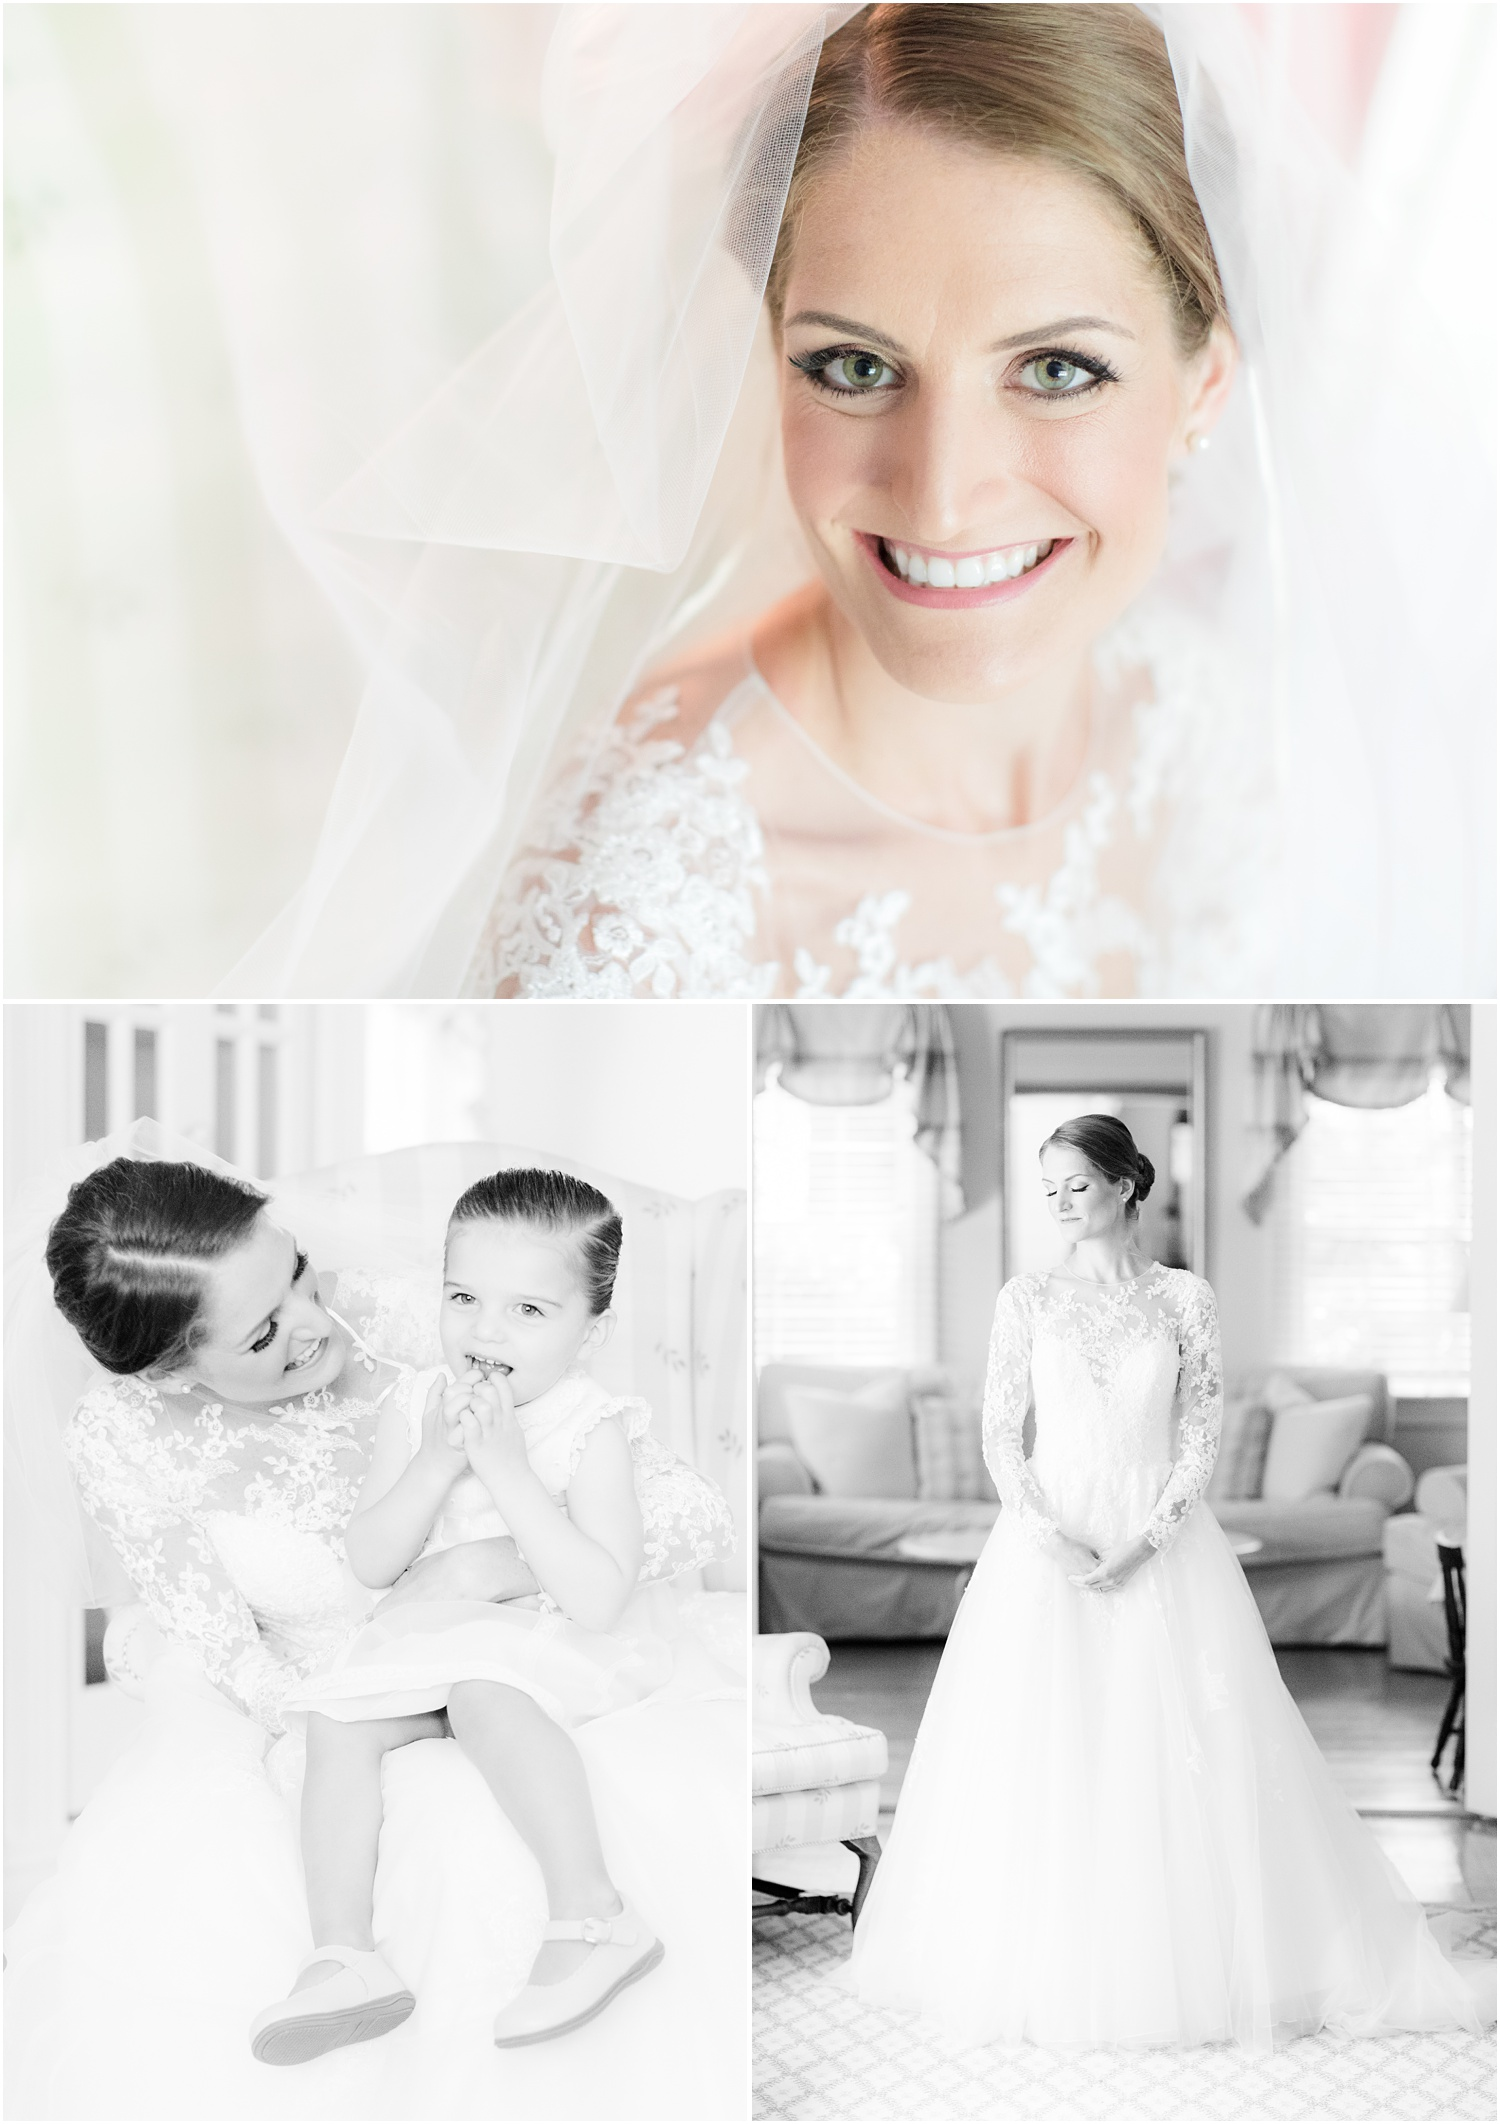 Copy of Traditional bridal portrait at bride's home in Short Hills, NJ.